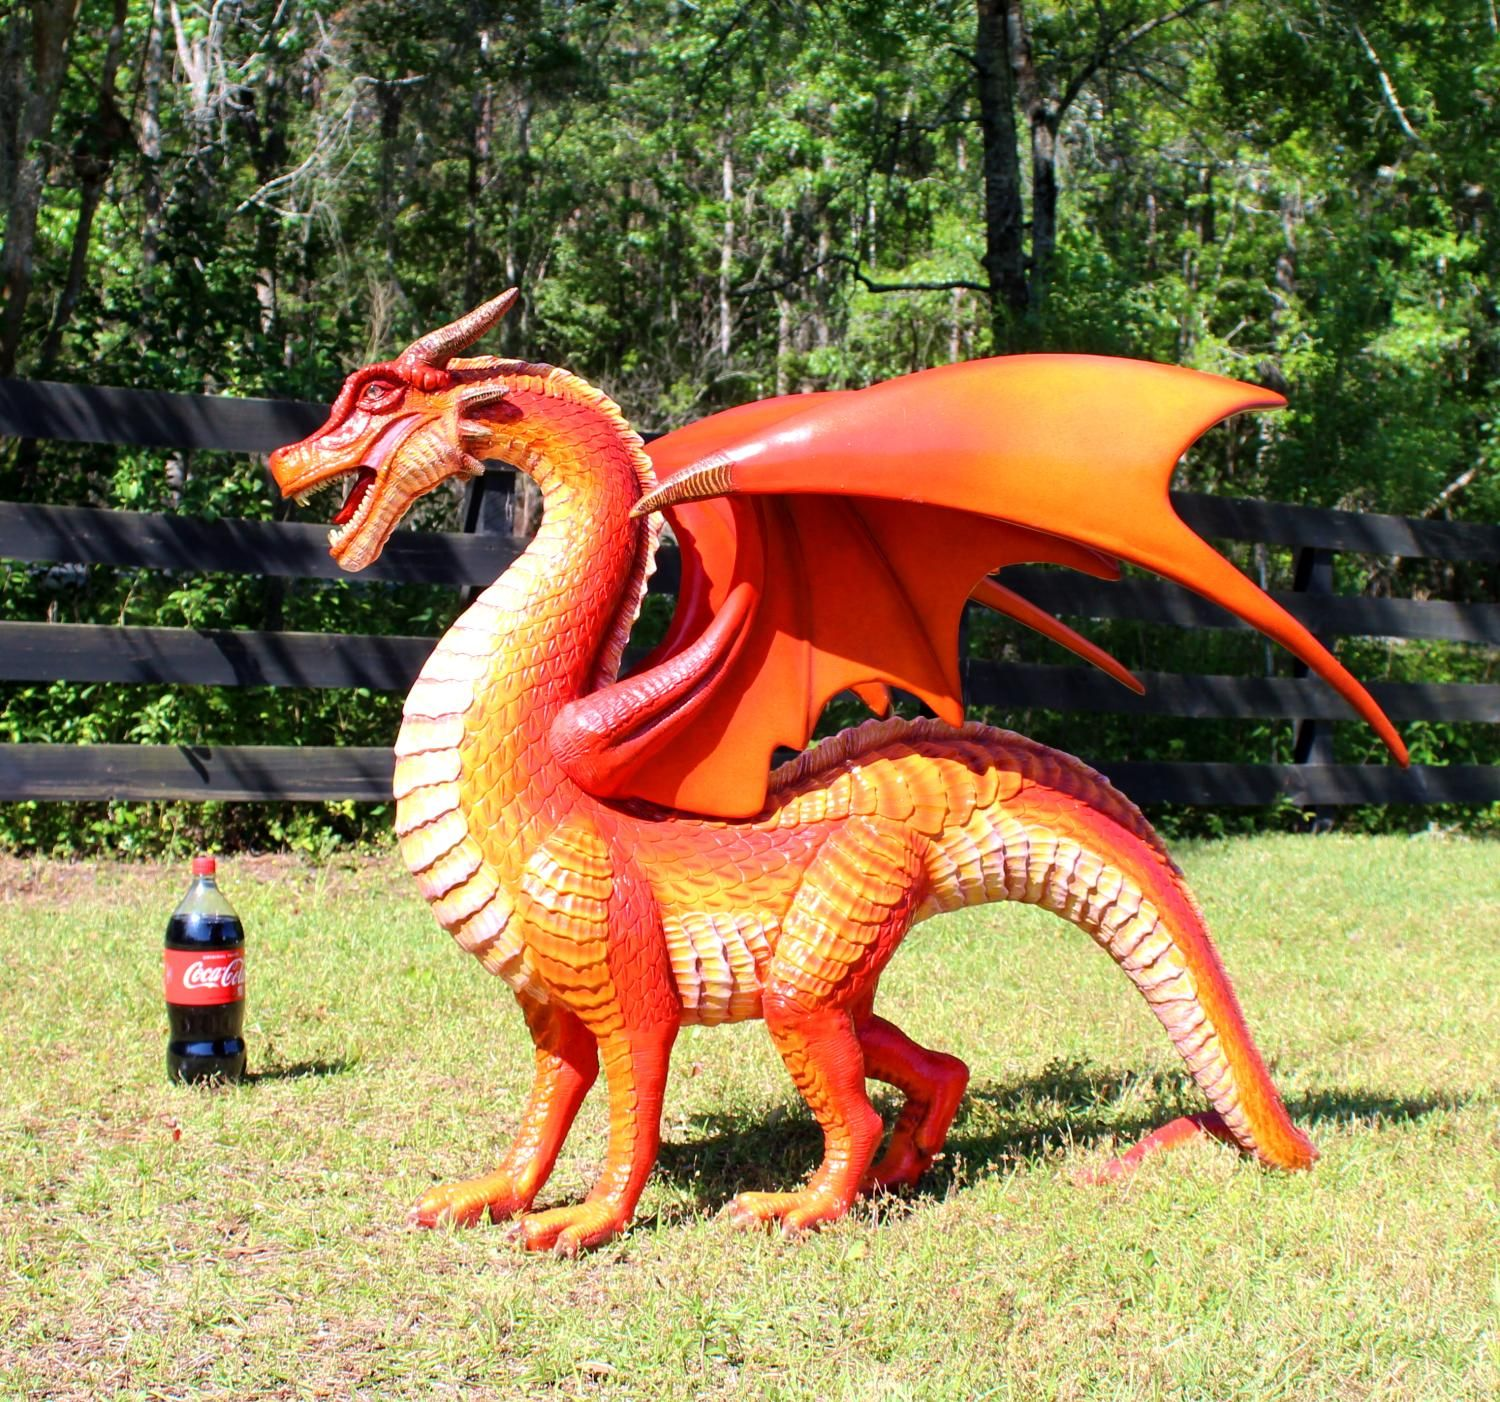 Red Dragon Sculpture Or Statue Wings And Sharp Teeth With Long Tail 51 Inch Long The Kings Bay Dragon Sculpture Dragon Statue Red Dragon